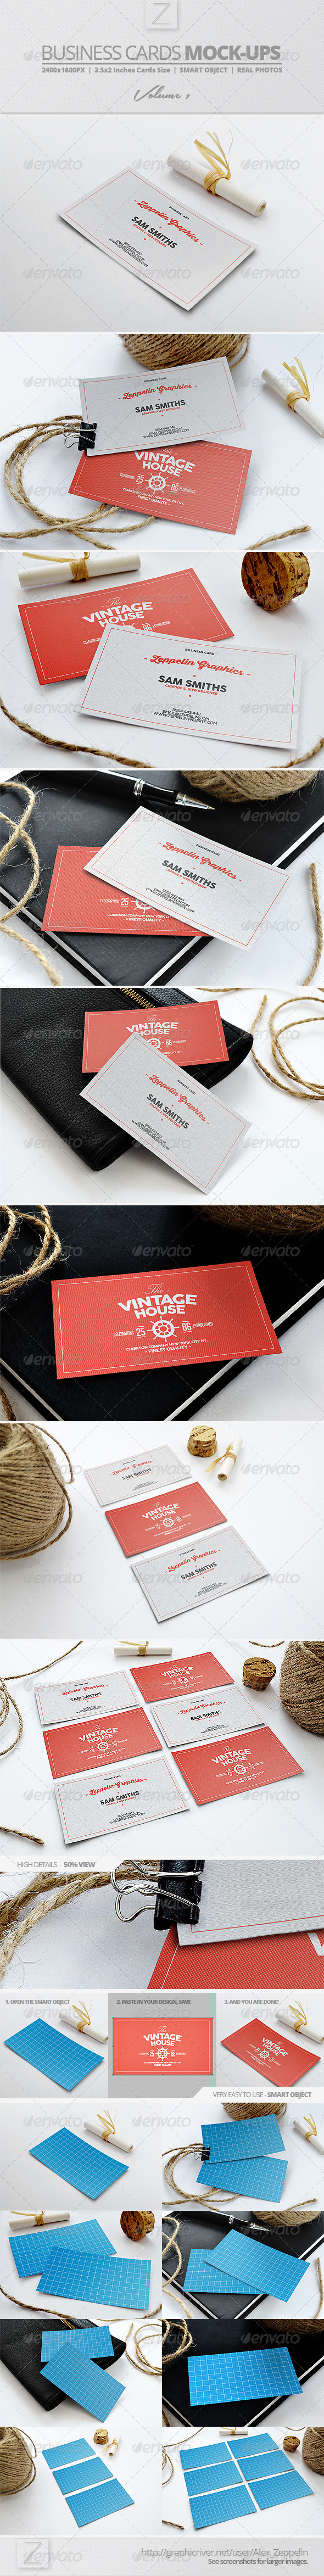 GraphicRiver Business Card Mock-ups Vol.1 7855204